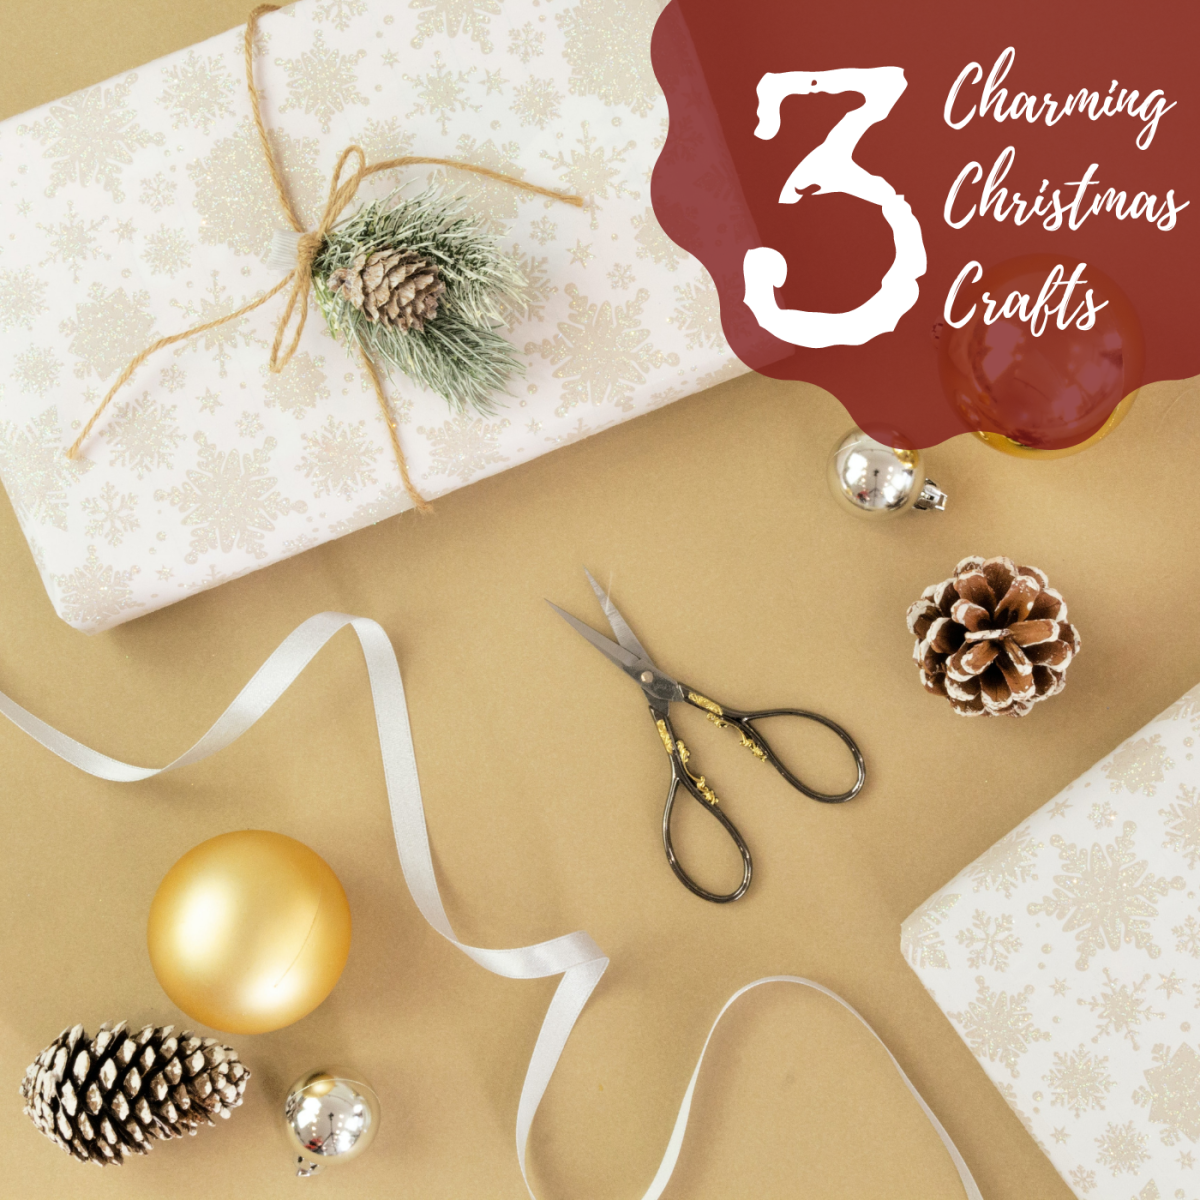 These three easy-to-make Christmas crafts will light up your home for the holidays.